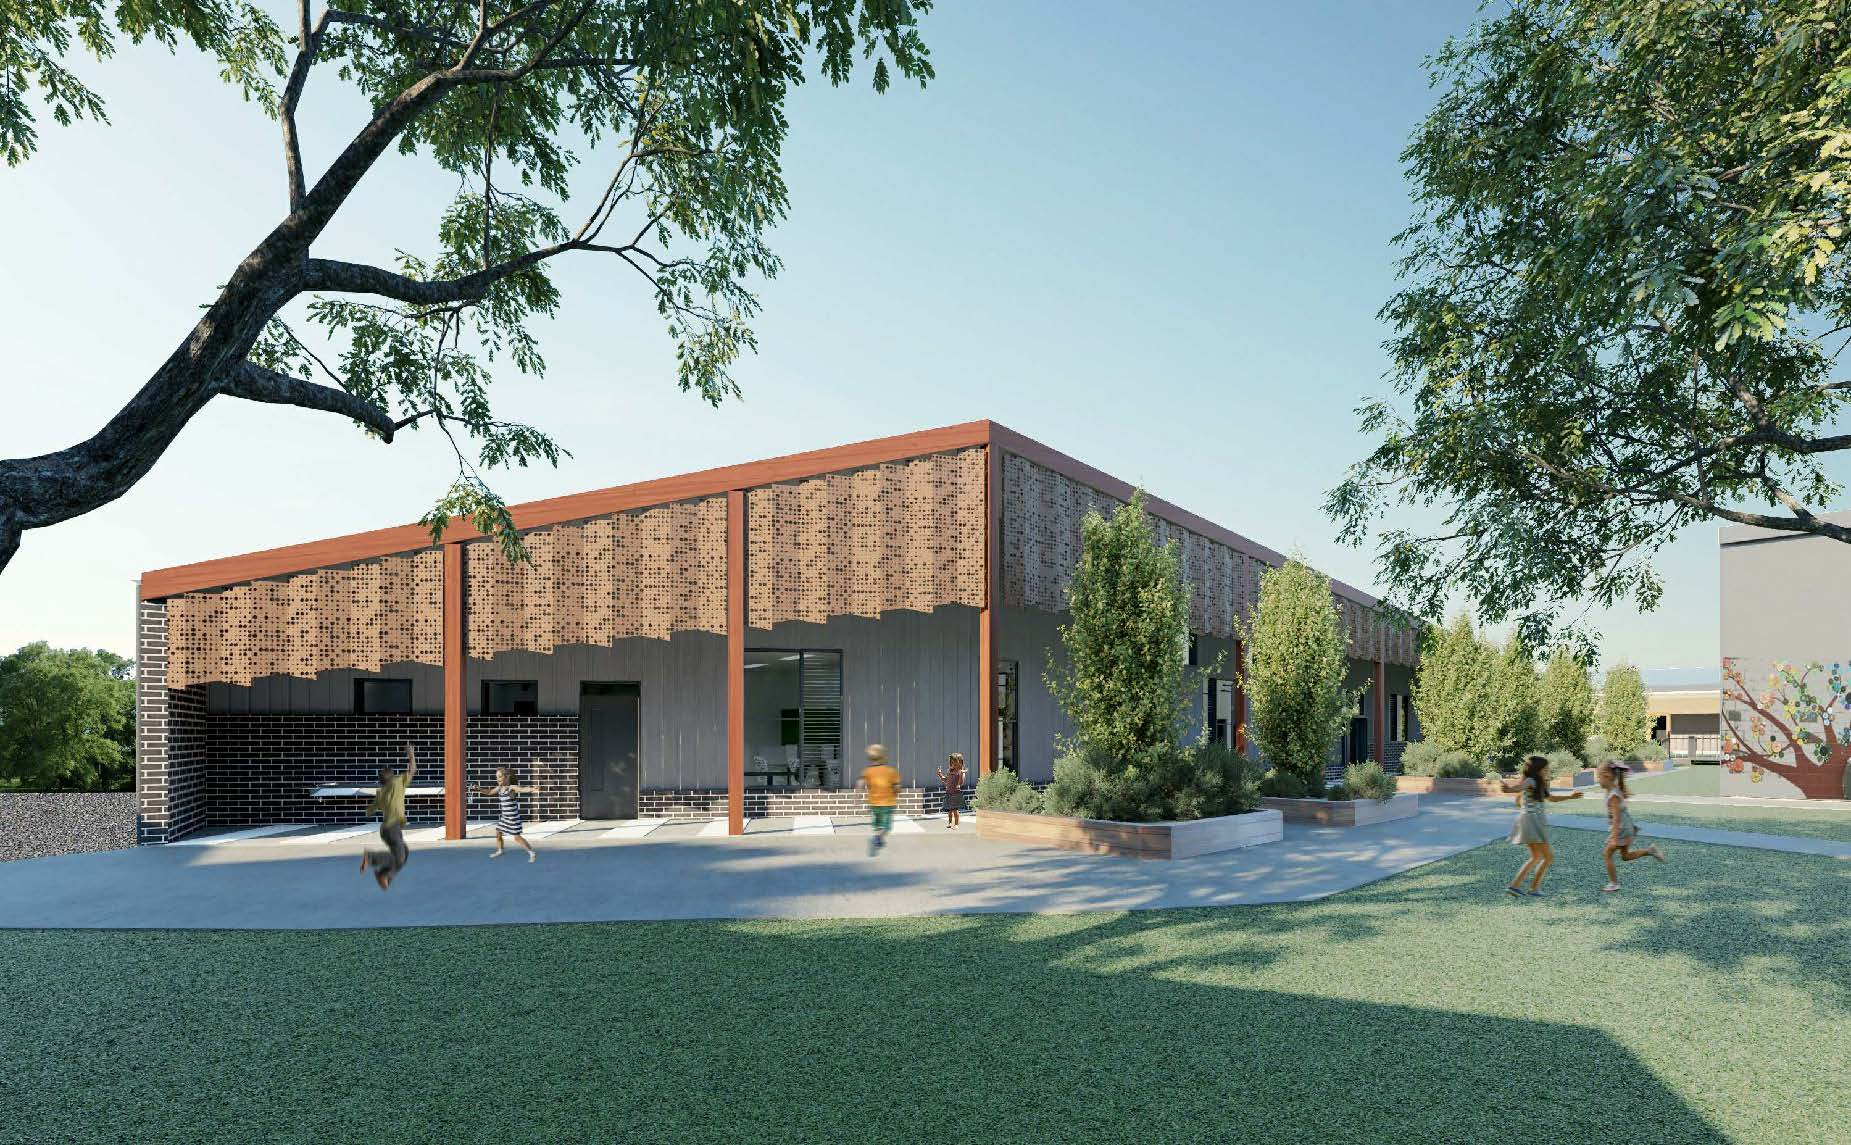 2Construct-Strathmore North Primary School